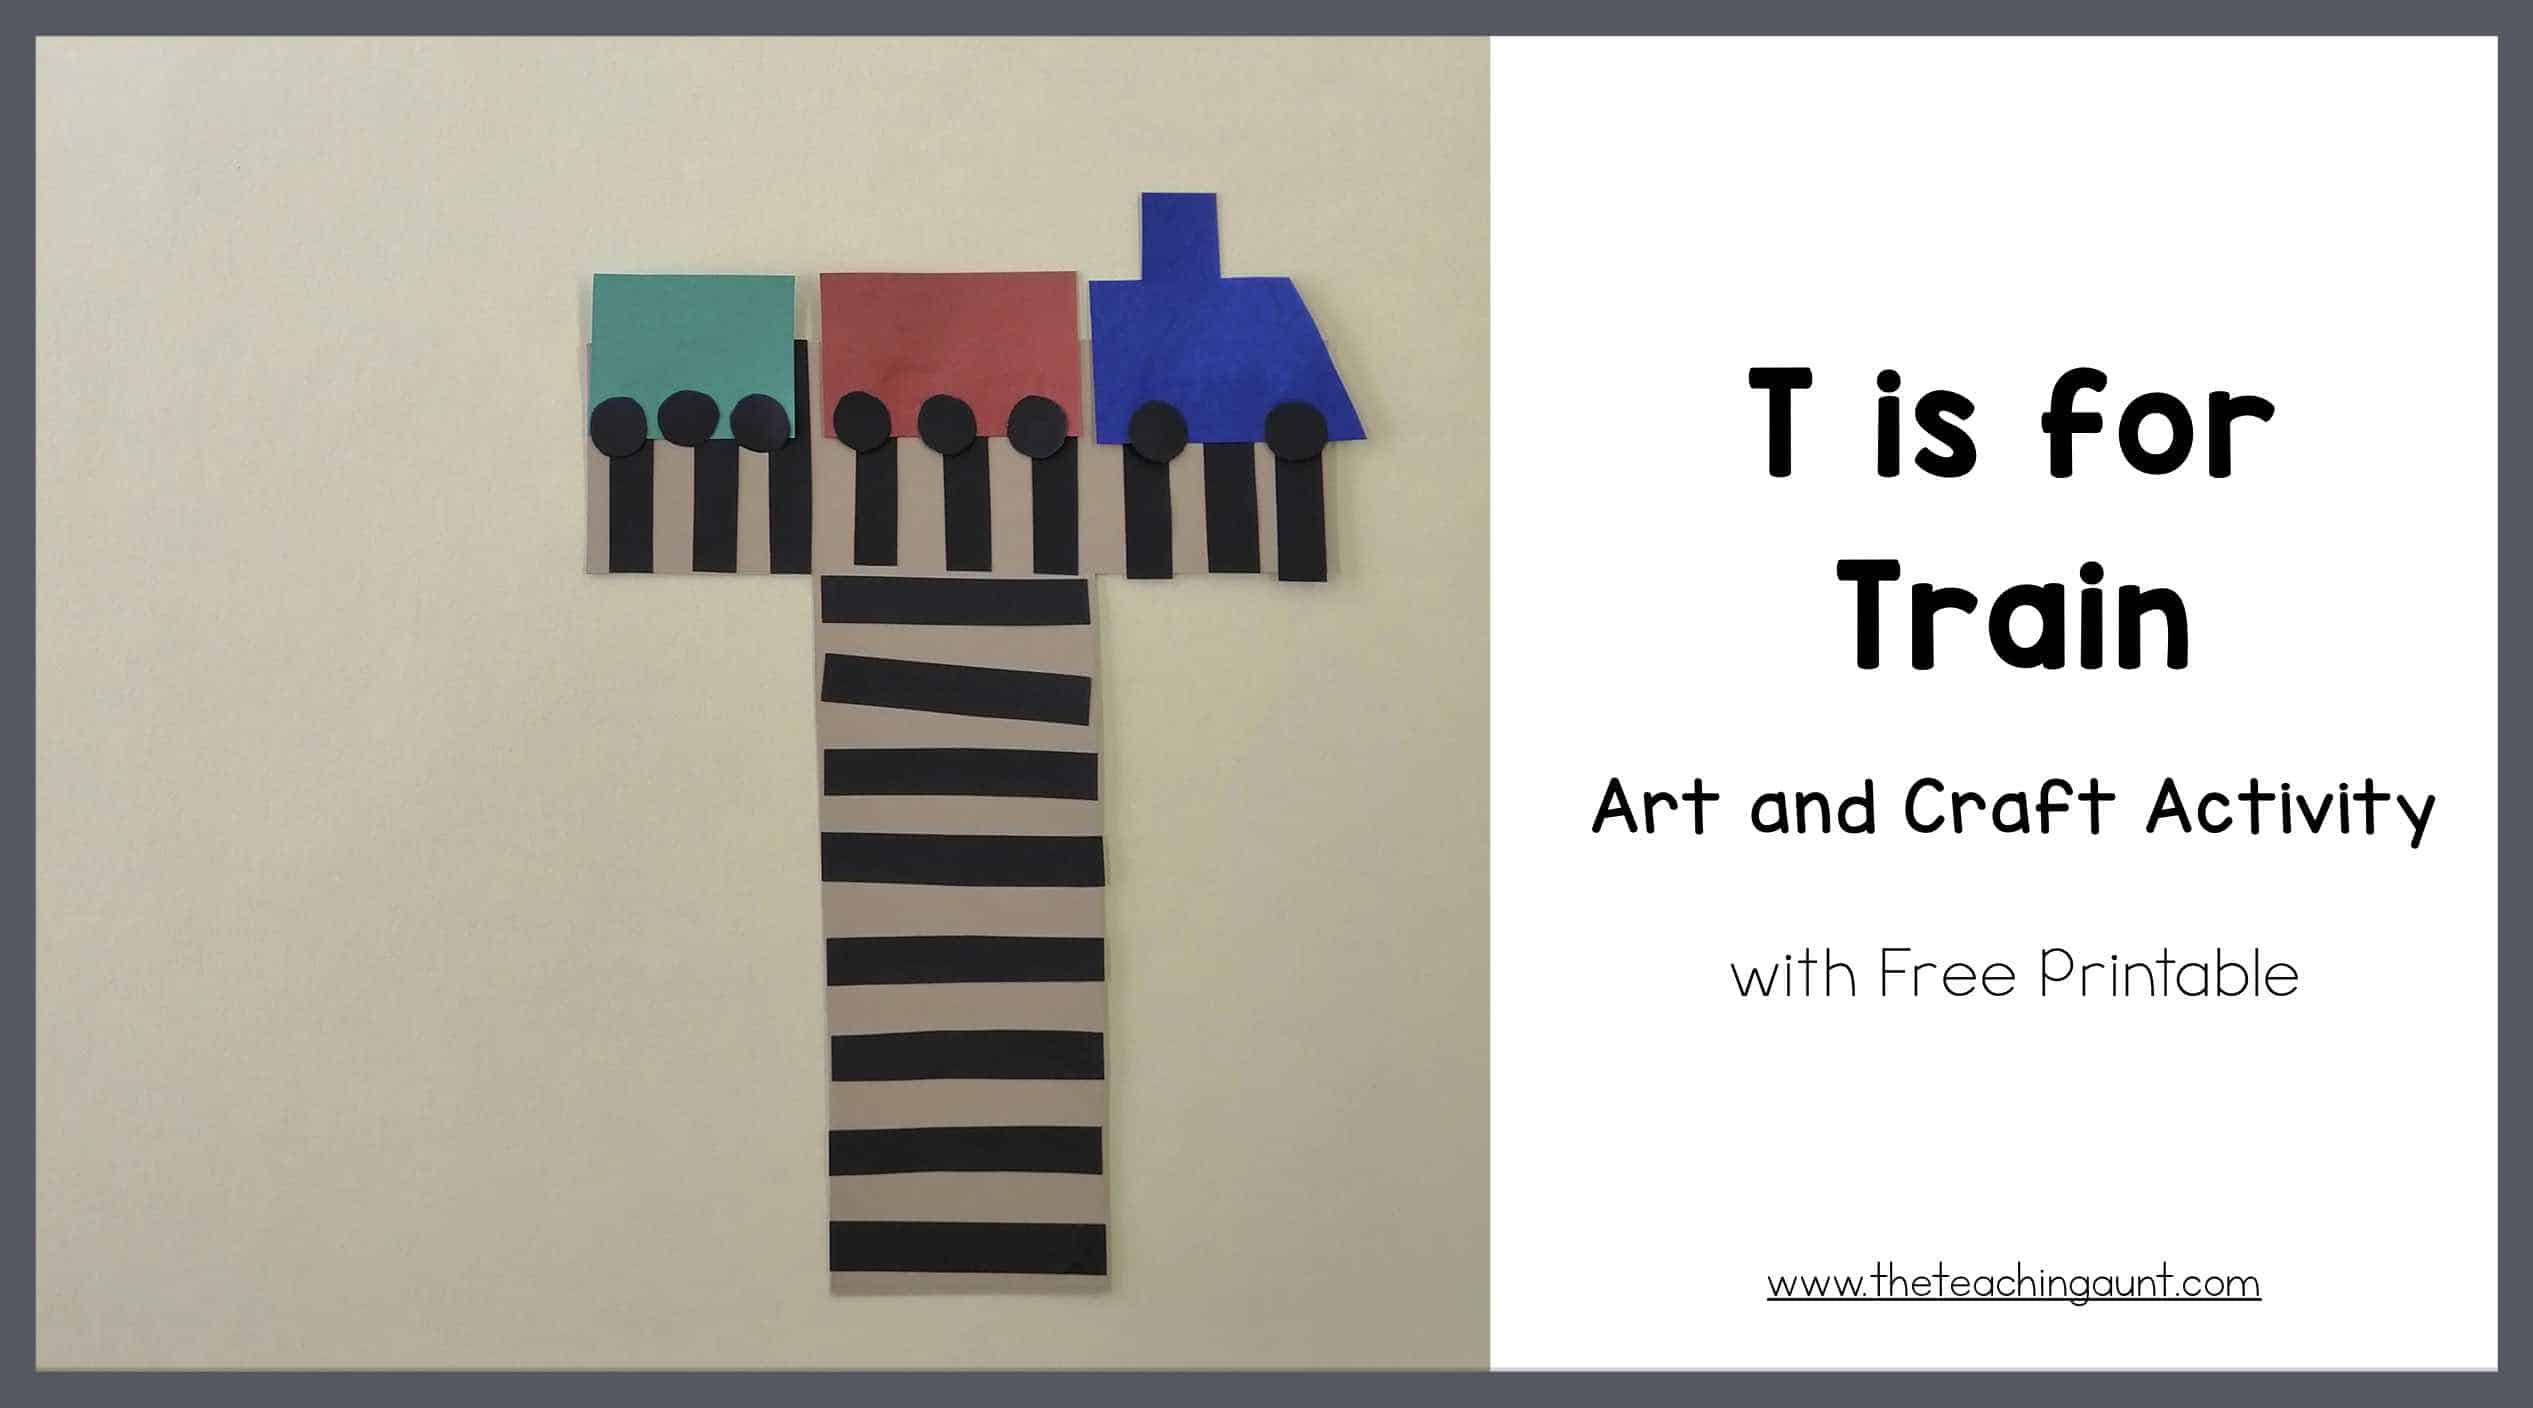 T is for Train Art and Craft